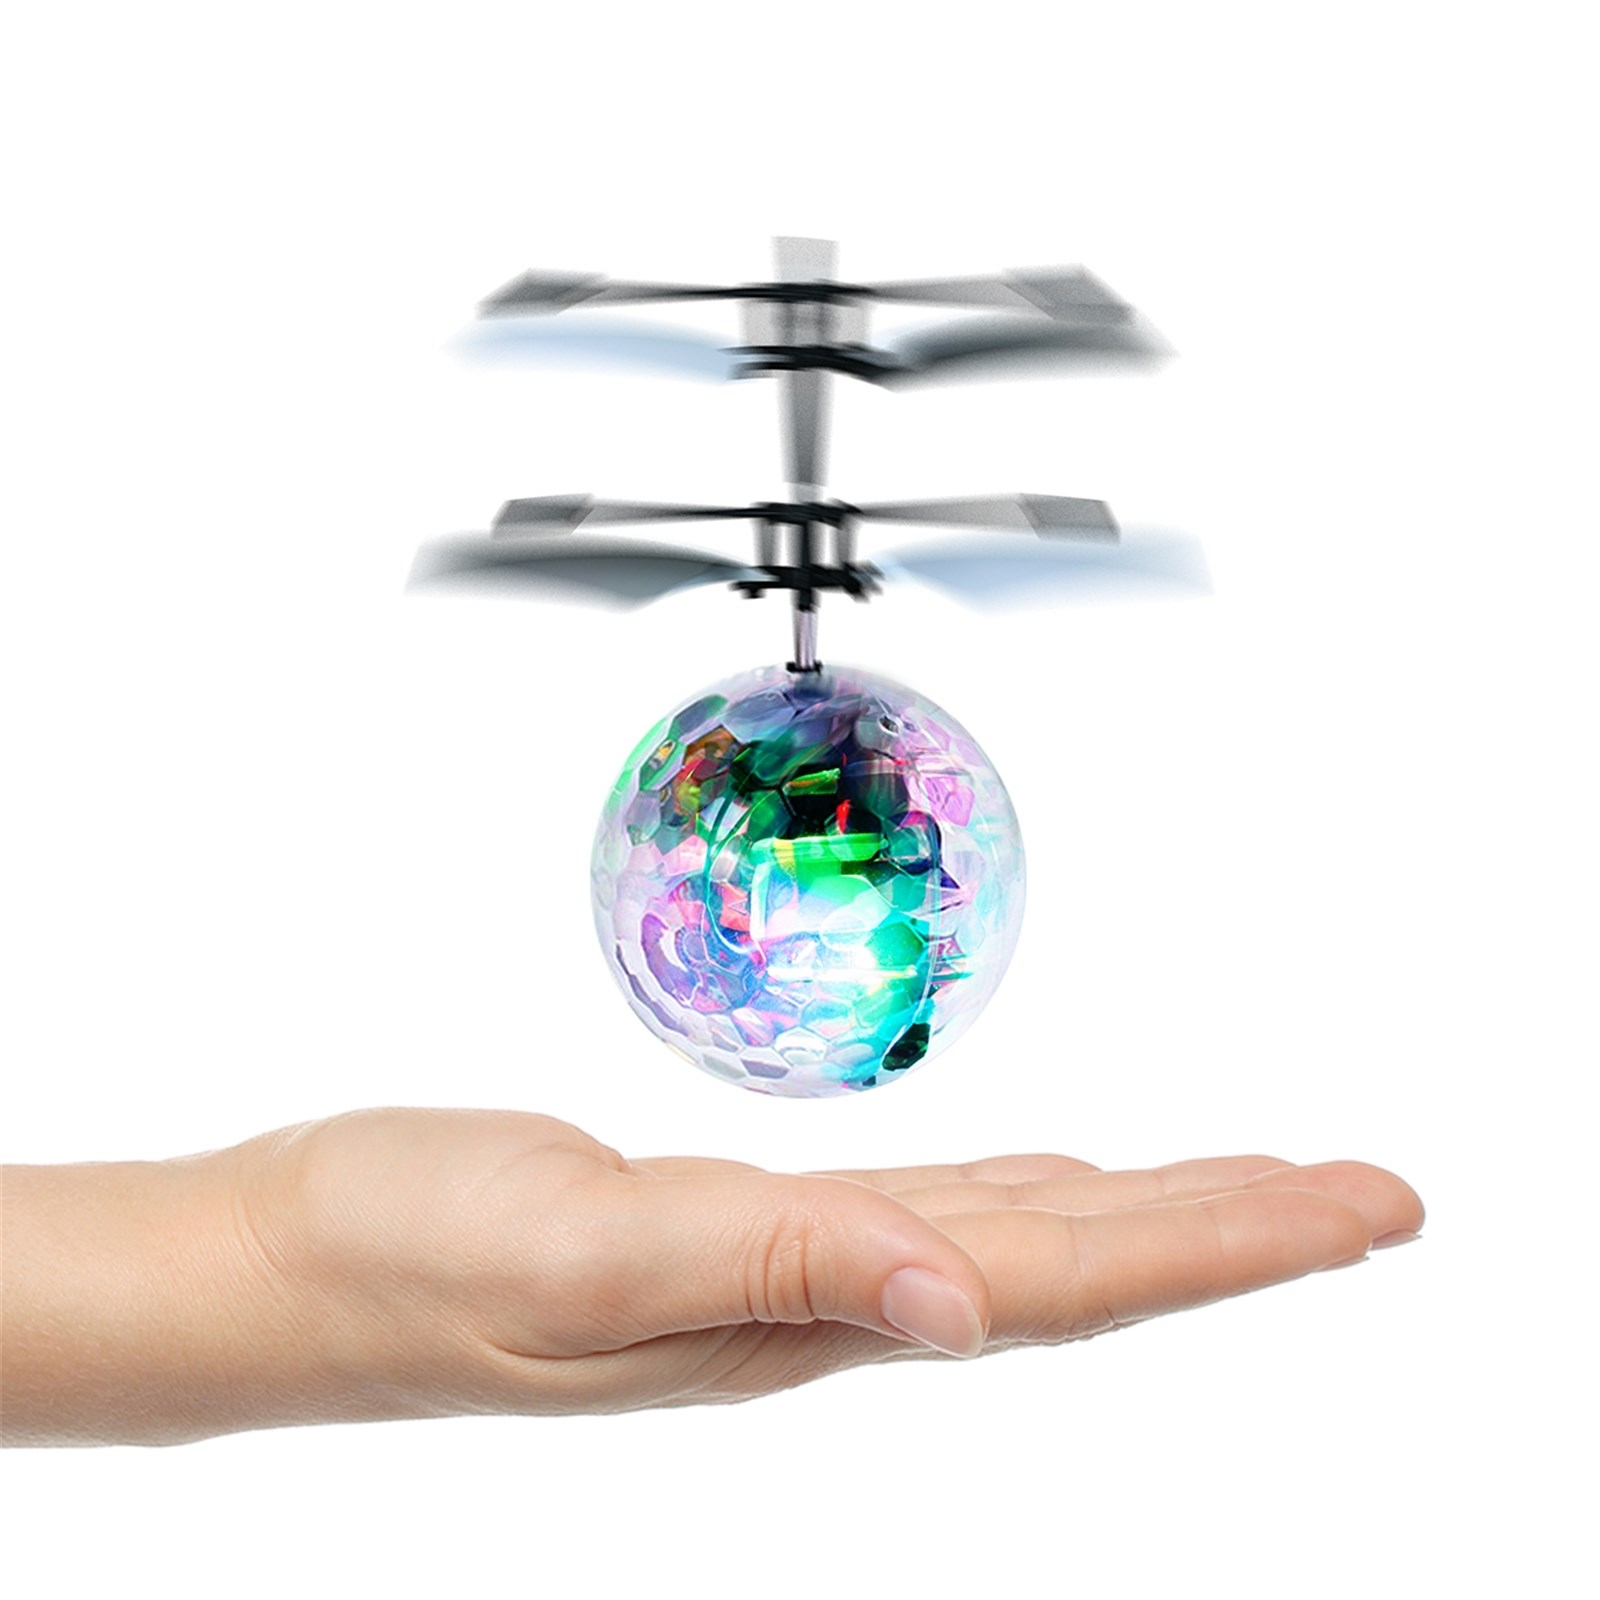 Flying Ball Helicopter Toy Drone $12.99 Shipped